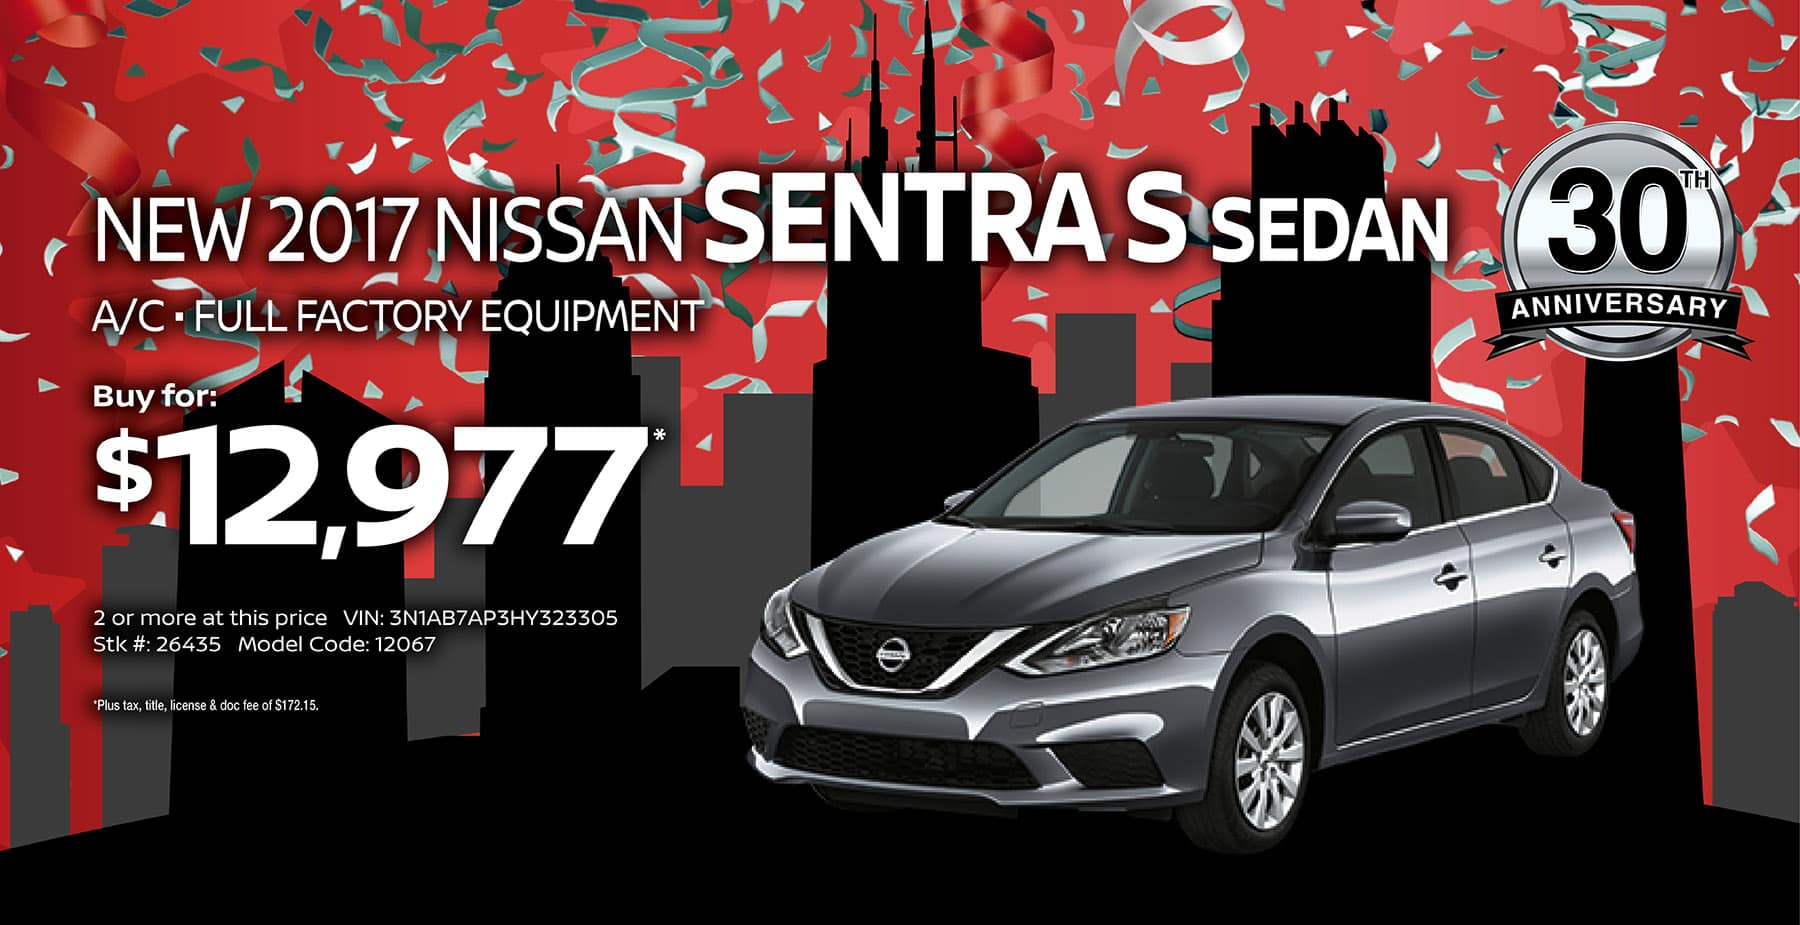 2017 Nissan Sentra September Sale at Star Nissan